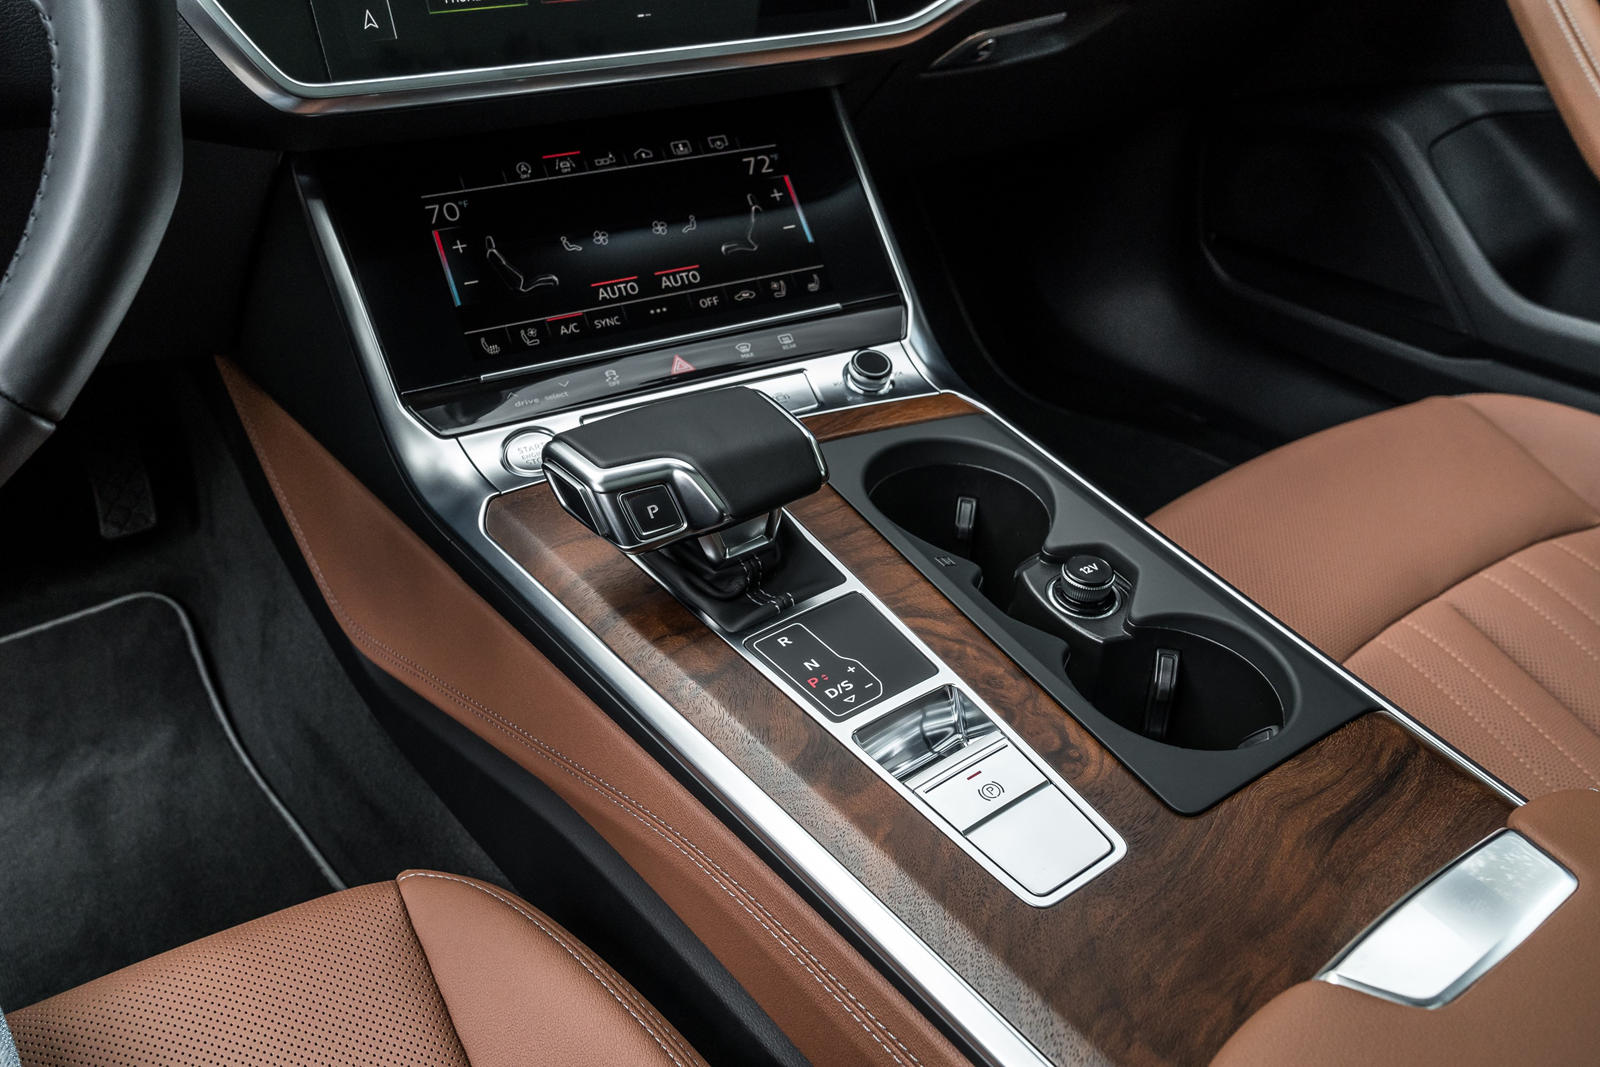 Gear Shifter of the Audi A6